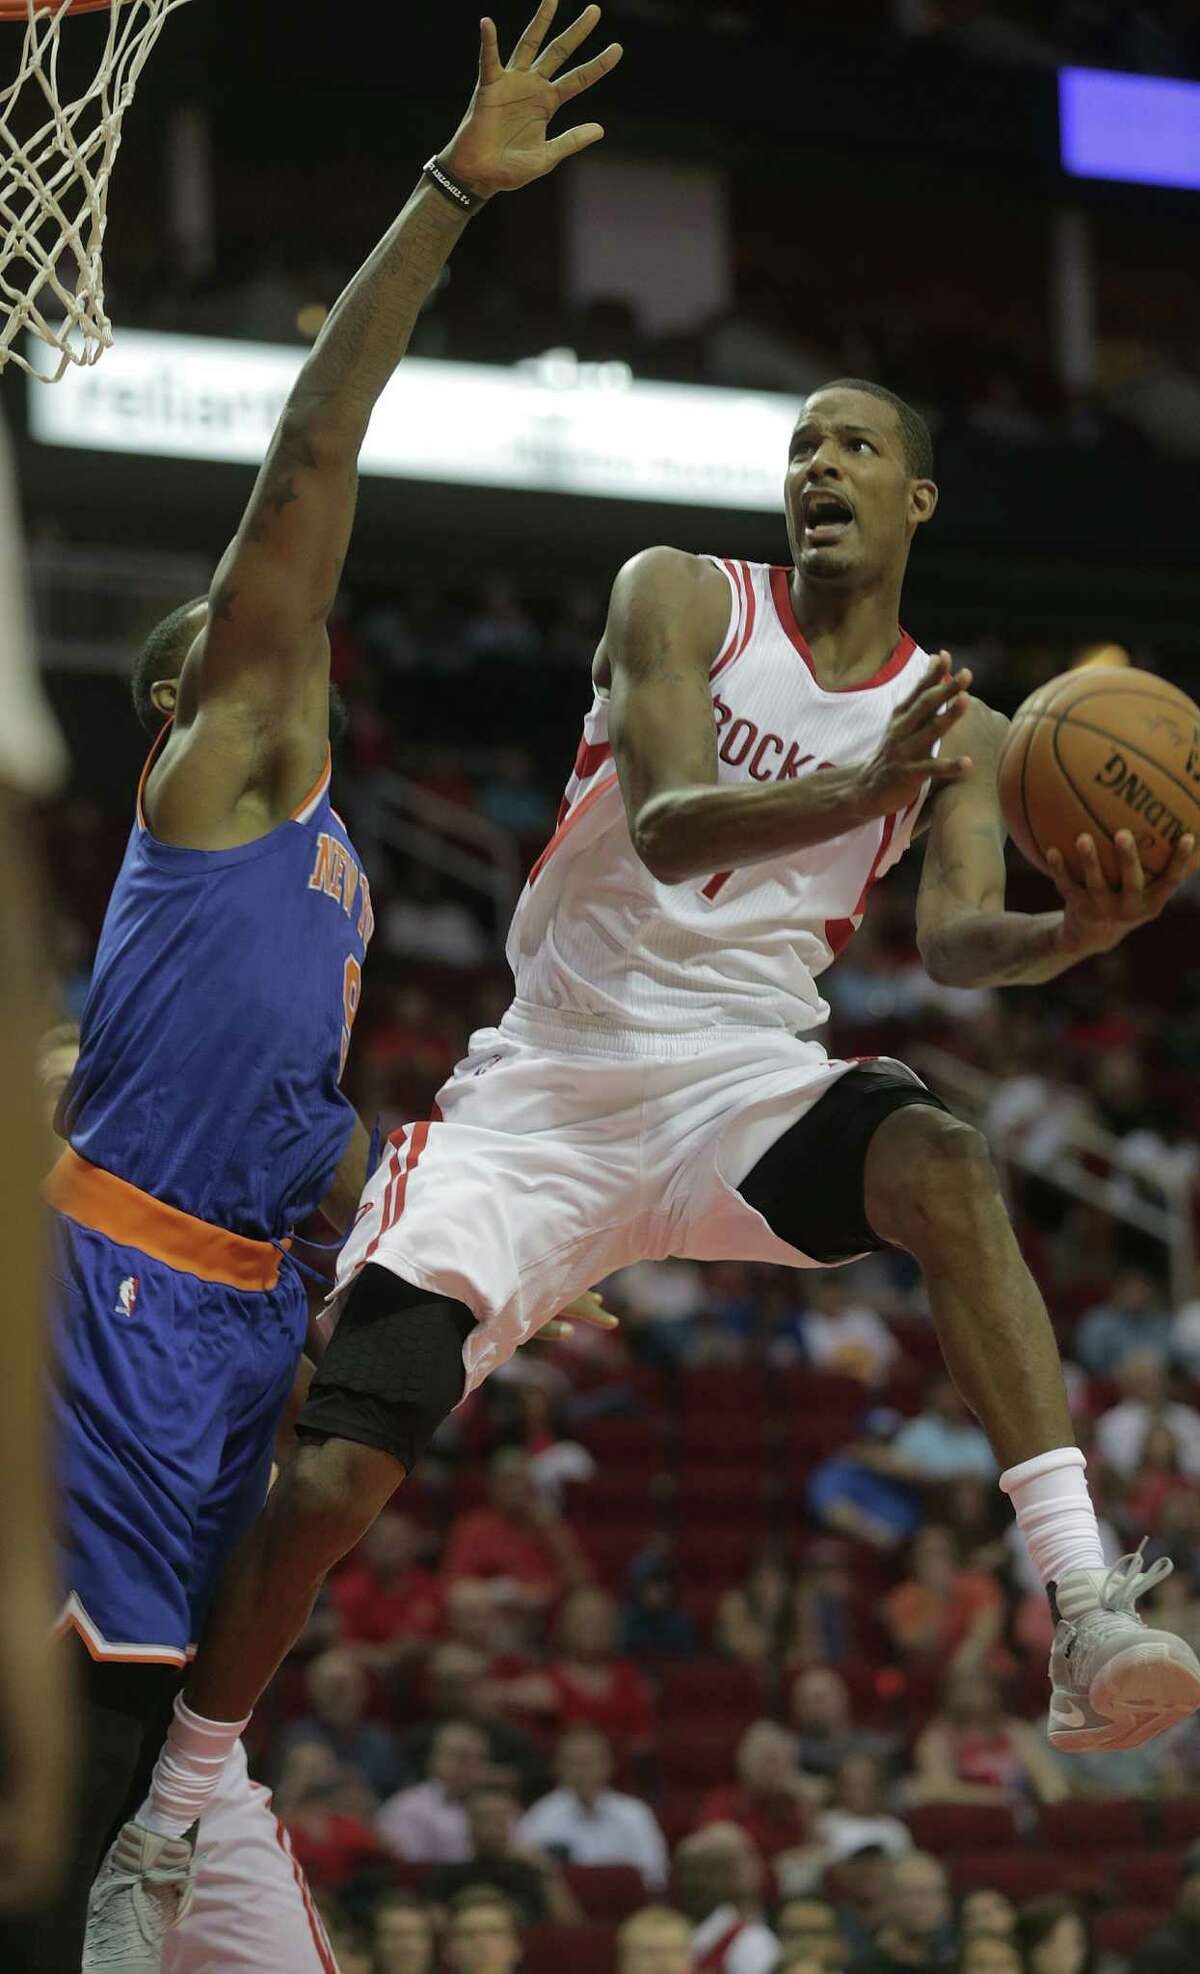 Houston Rockets forward Trevor Ariza (1) is fouled by New York Knicks forward Kyle O'Quinn (9) in the first half of game action at the Toyota Center on Tuesday, Oct. 4, 2016, in Houston.